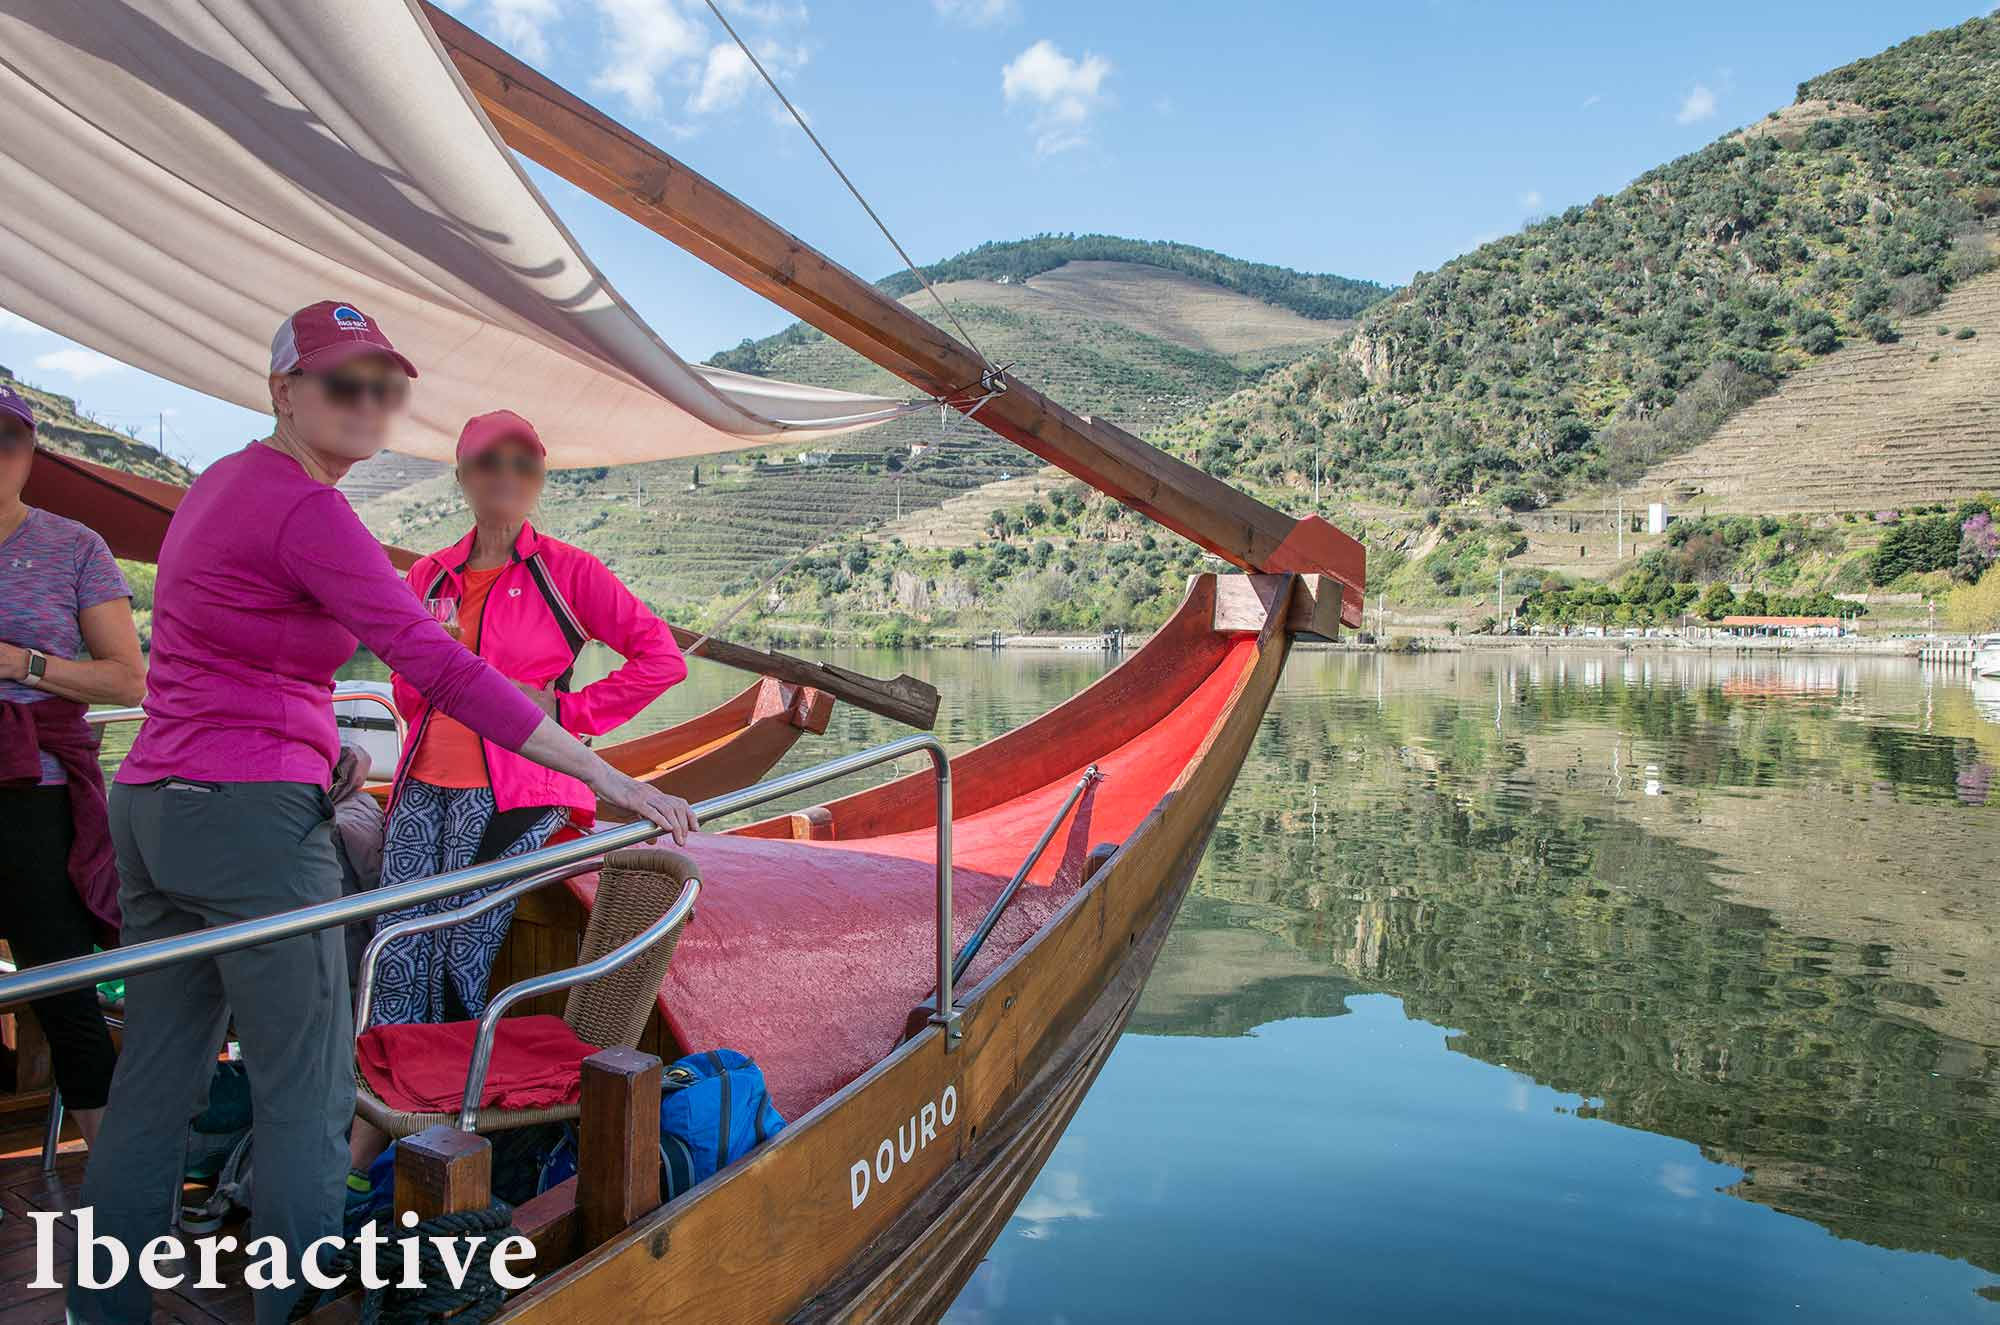 Rabelo boat, the traditional wooden boat of the Douro river, Portugal